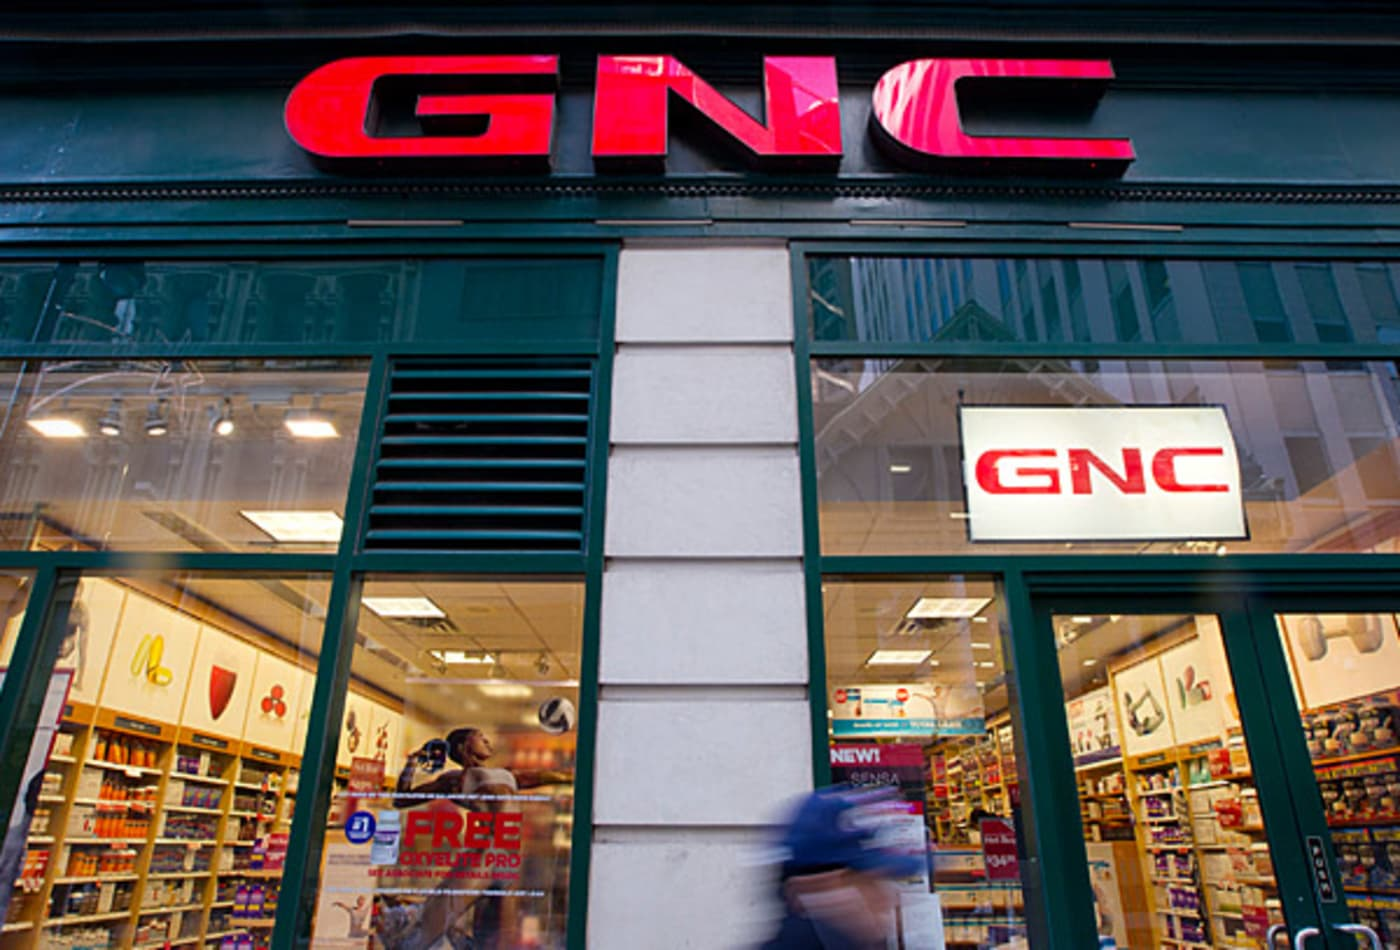 CNBC-Best-Investments-2011-Best-IPO-GNC.jpg